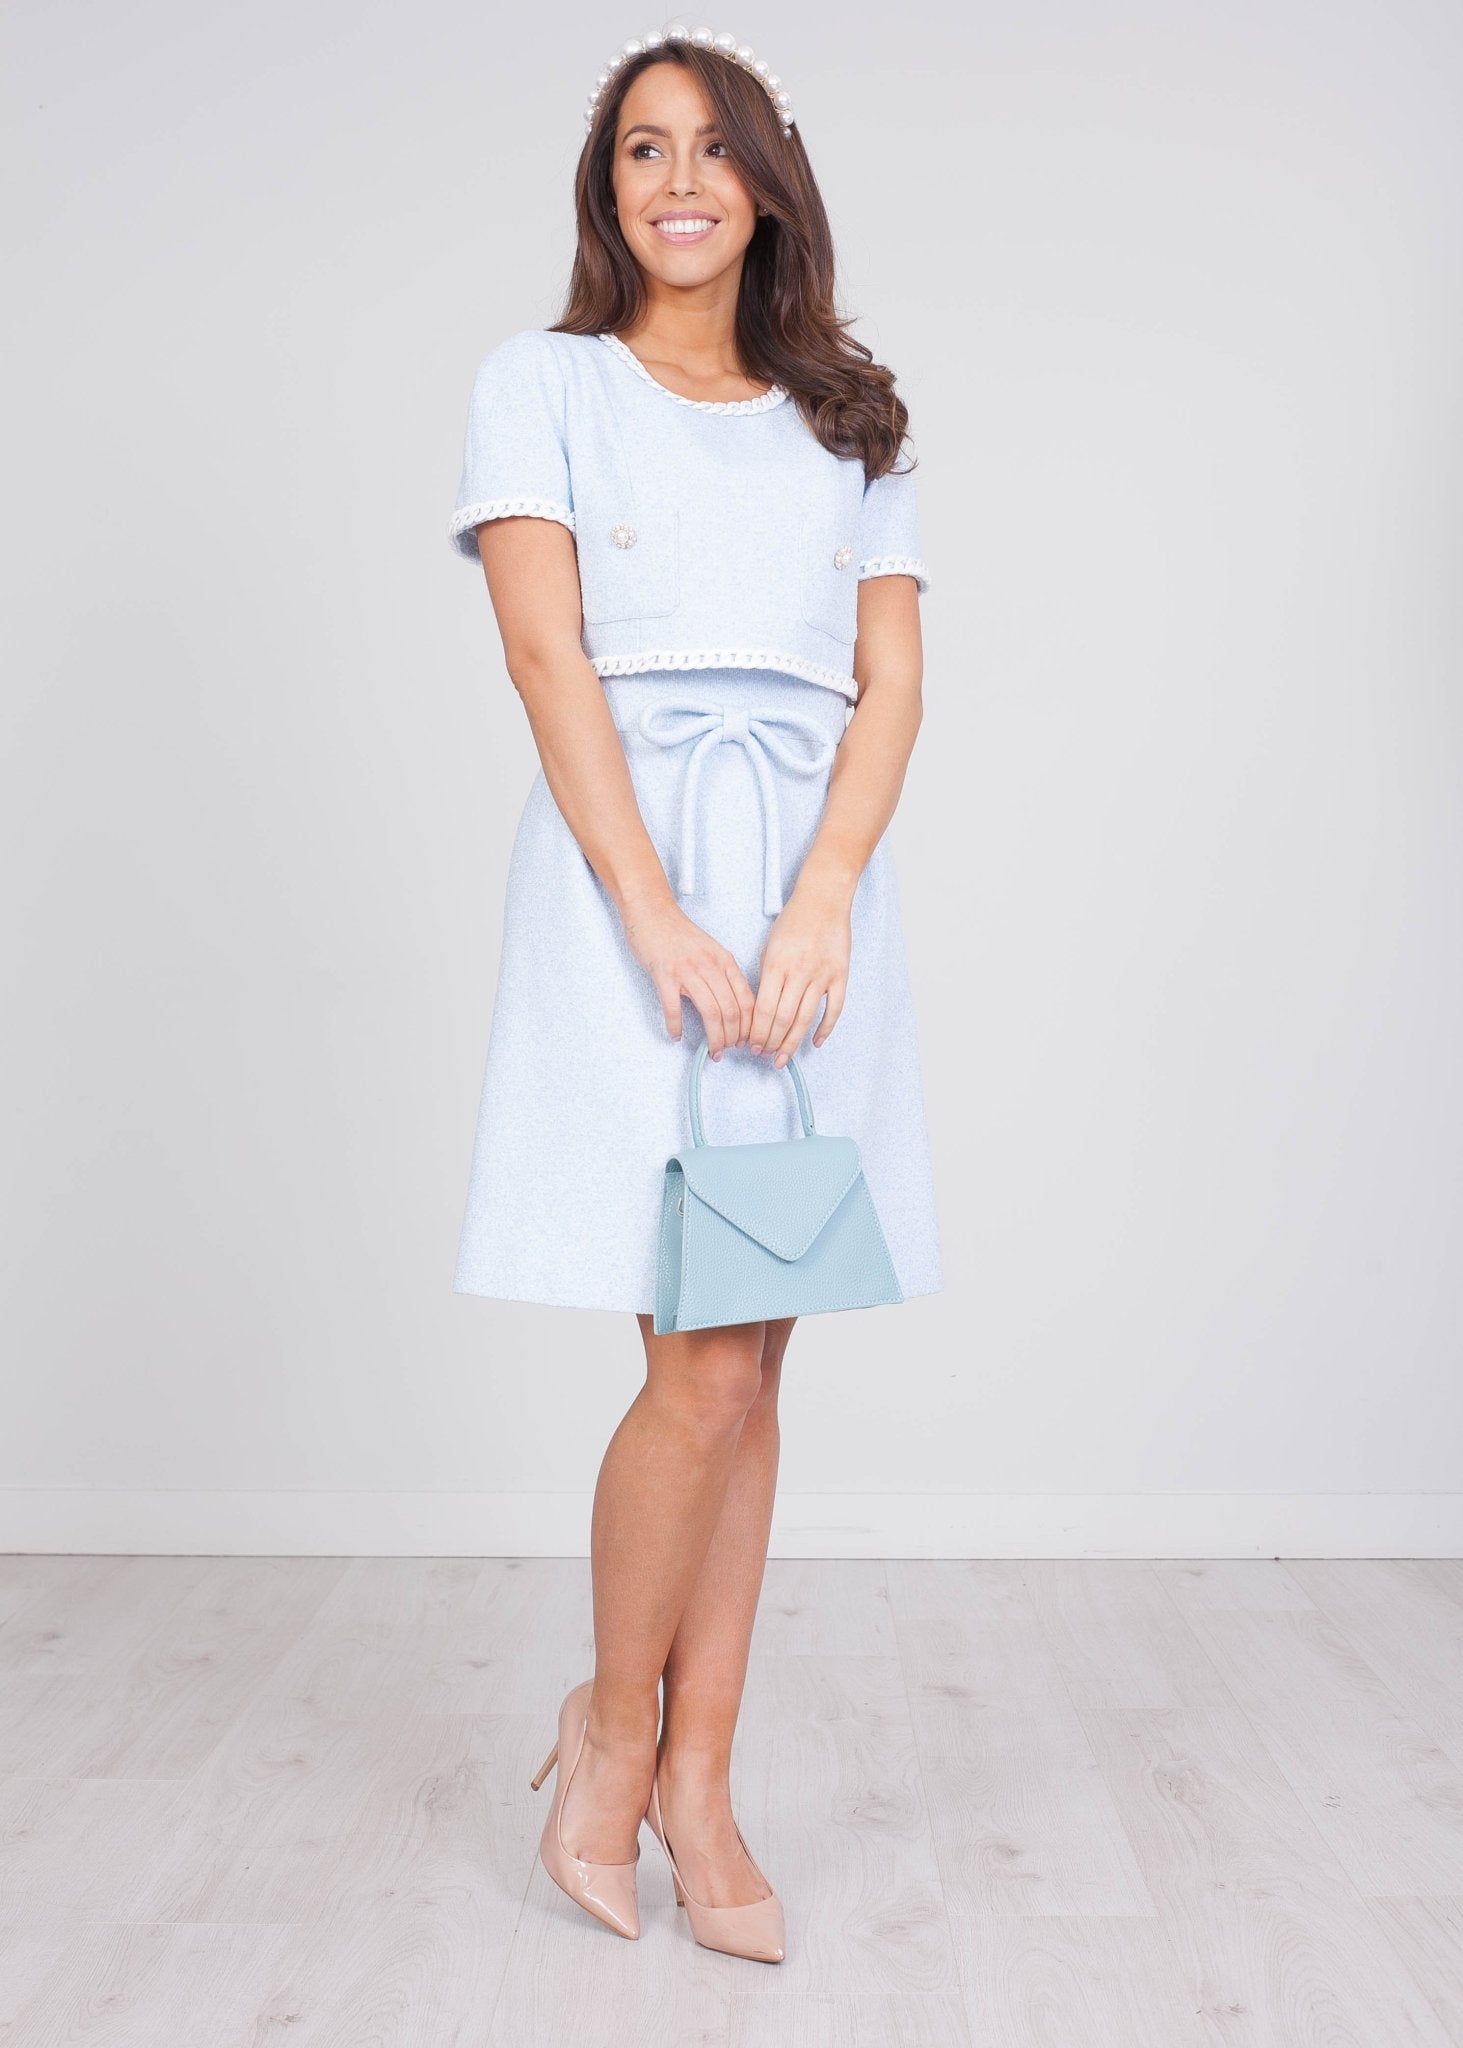 Aliyah Blue Dress - The Walk in Wardrobe